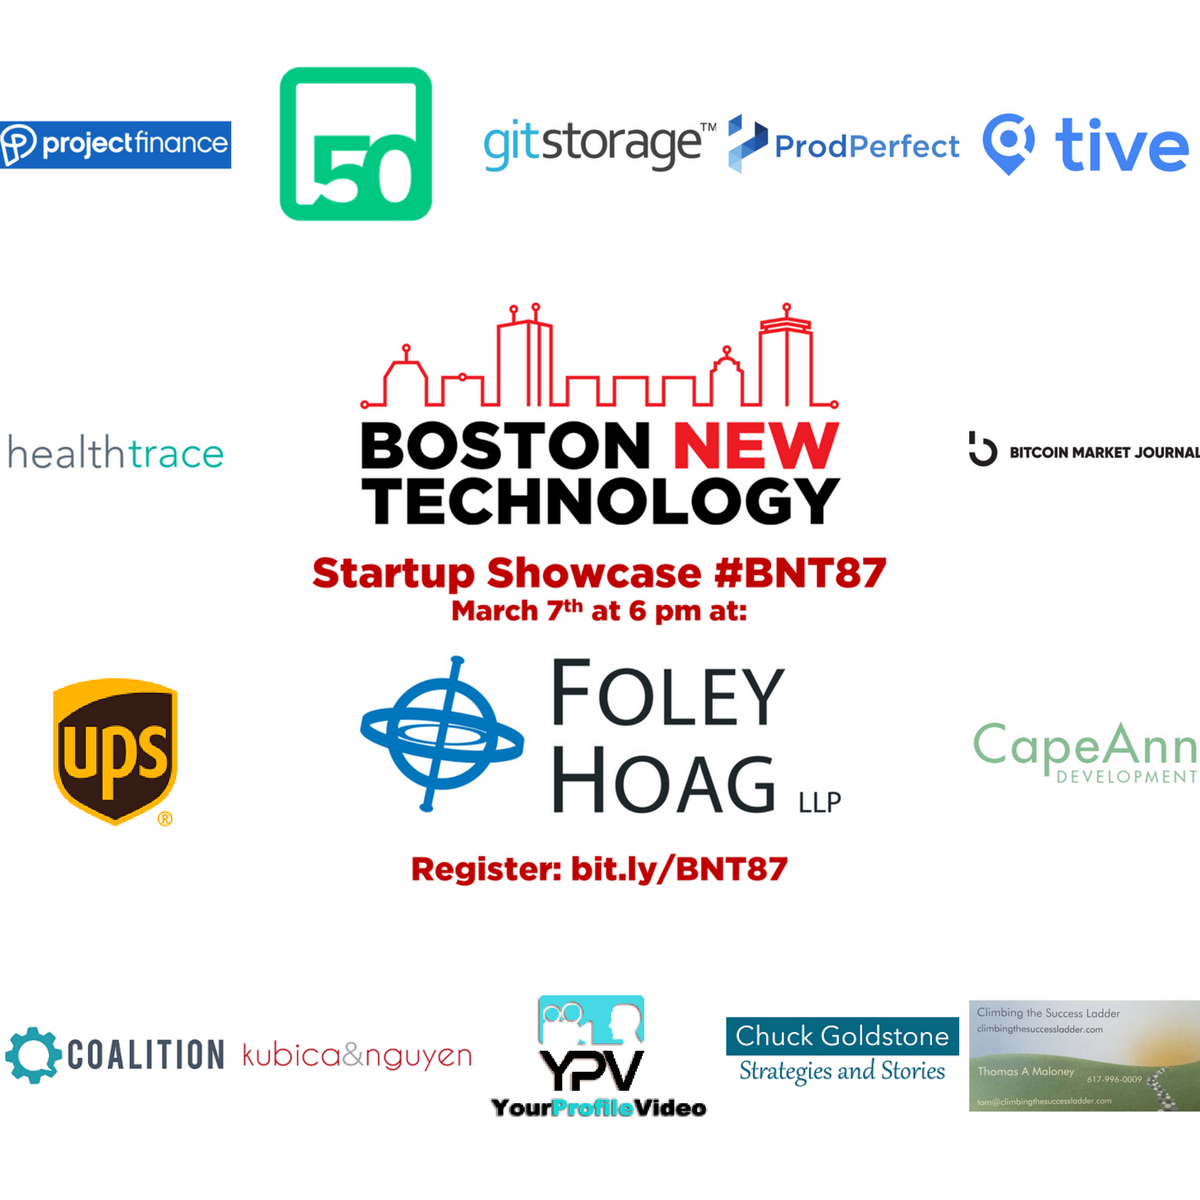 Boston New Technology #BNT87 Startup Showcase